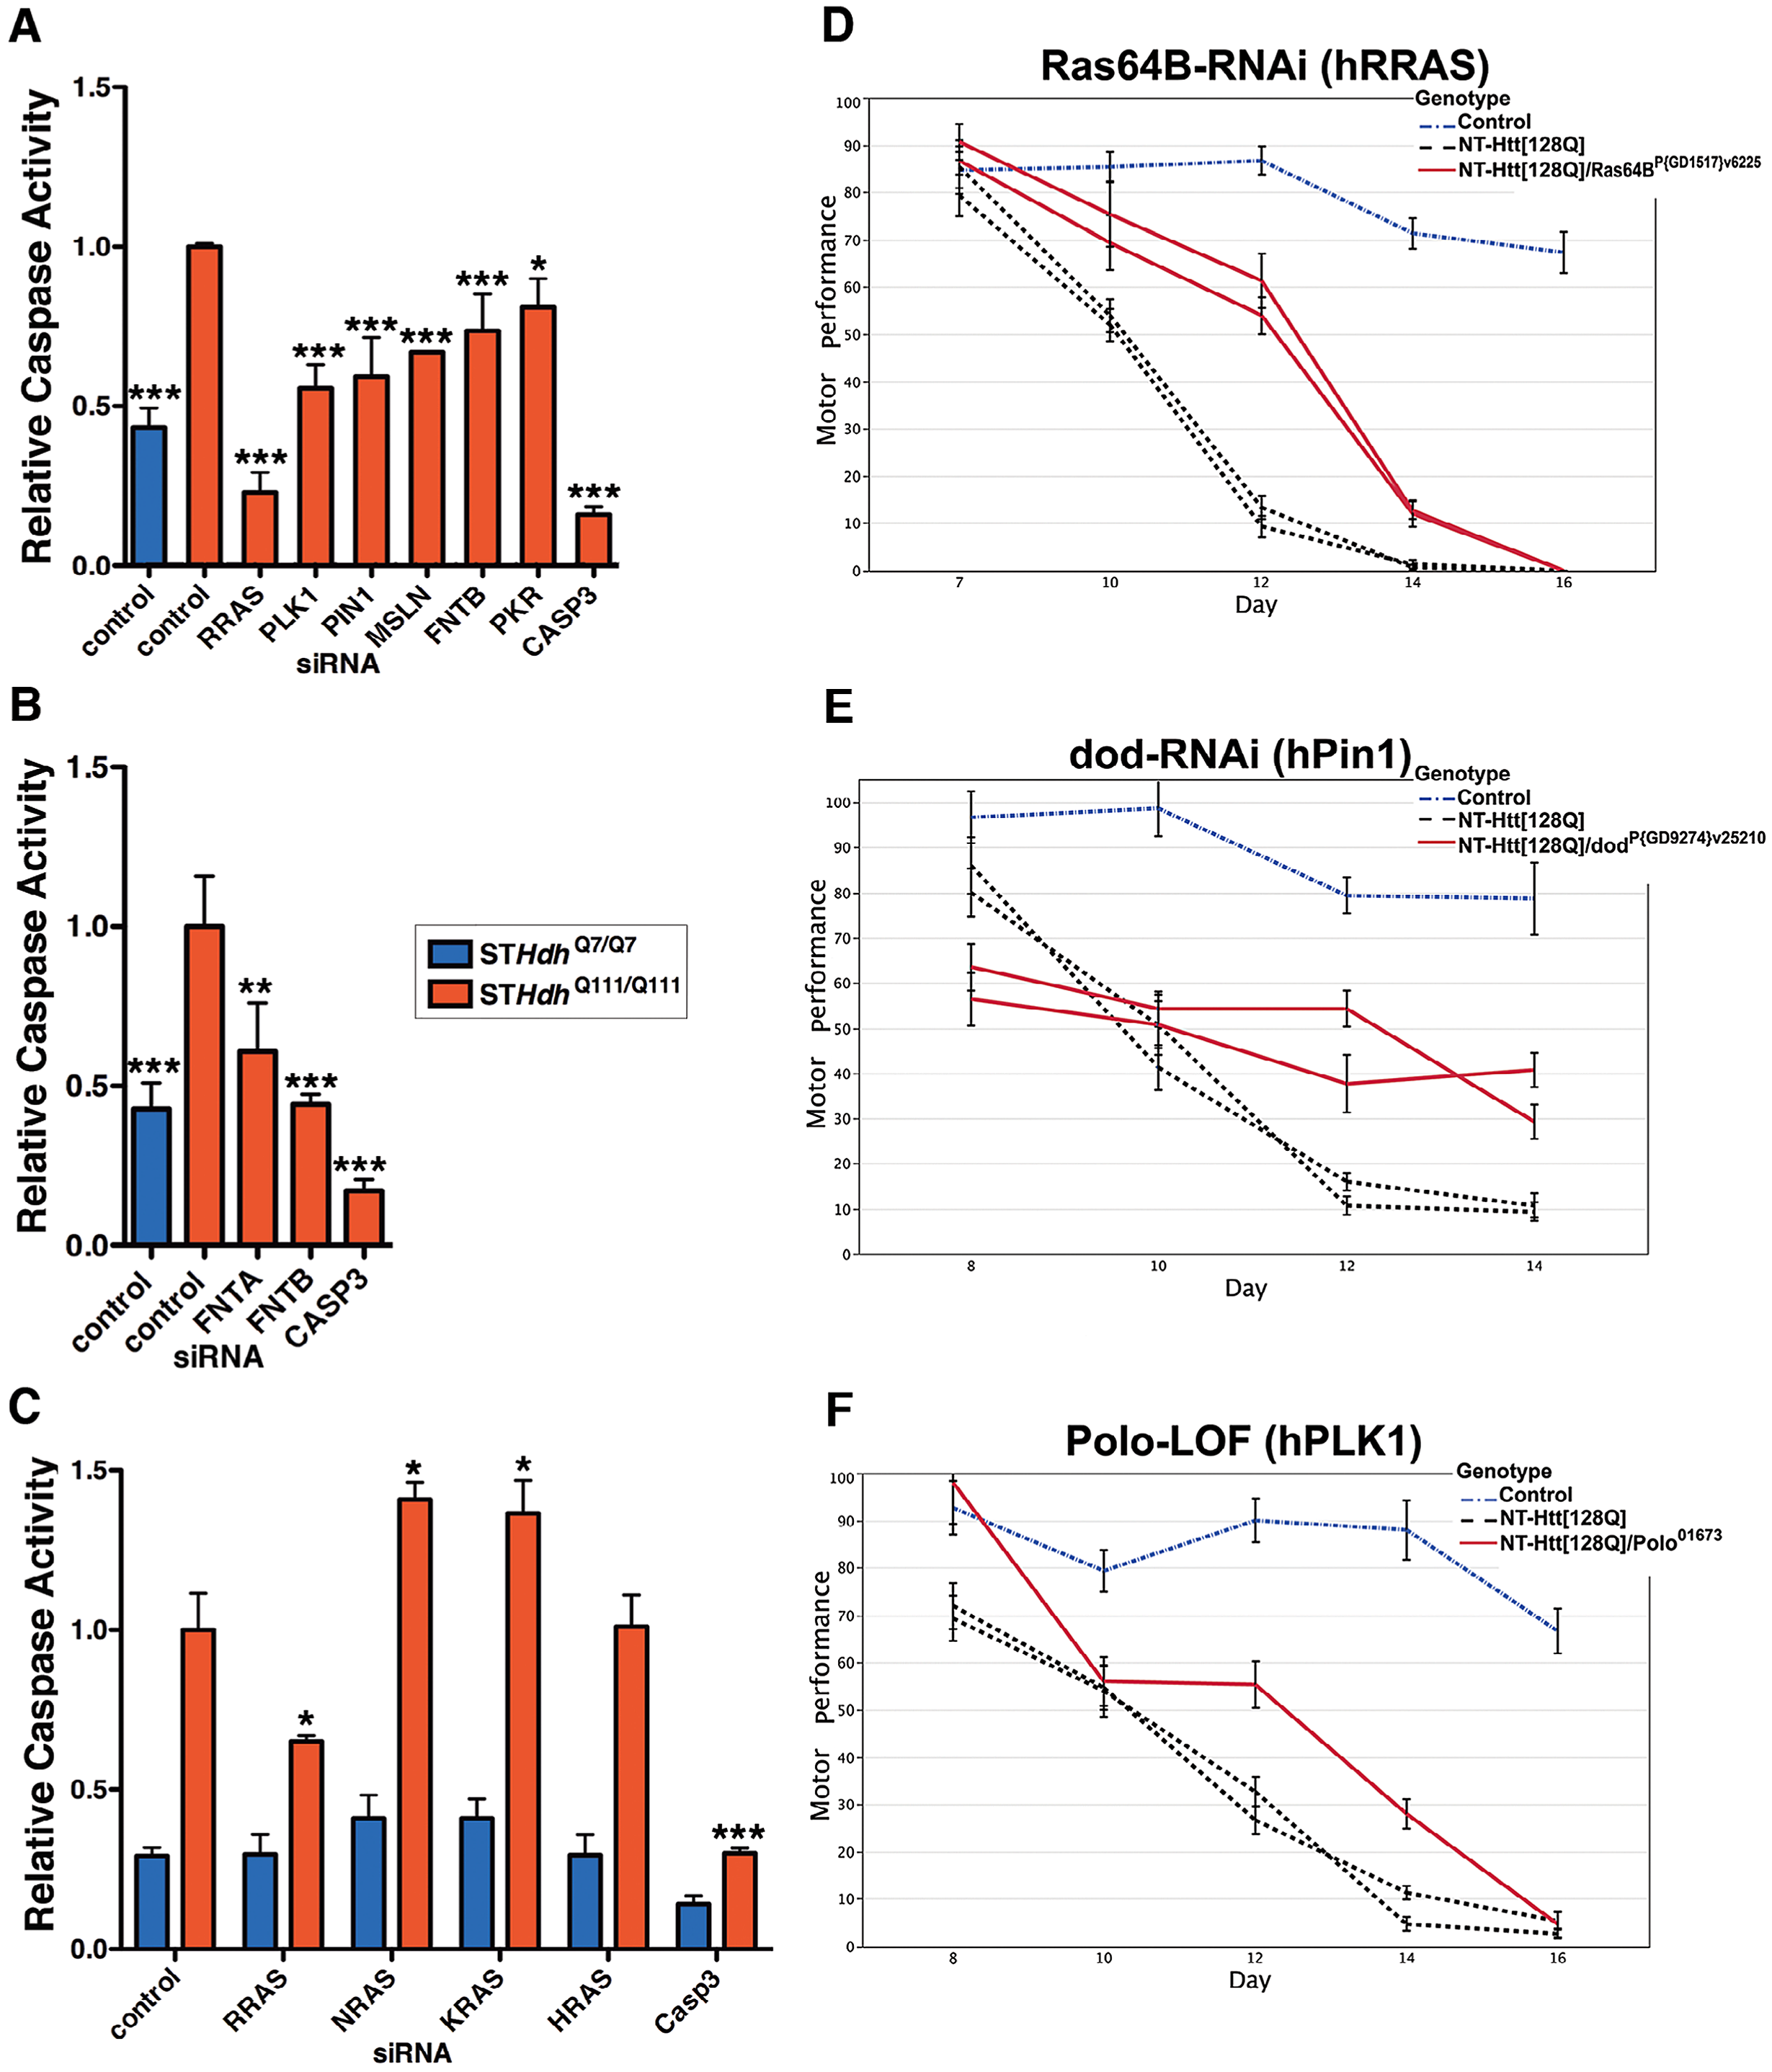 Suppression of Htt Toxicity by Knock-Down of RRAS Signaling Is Conserved across HD Models.